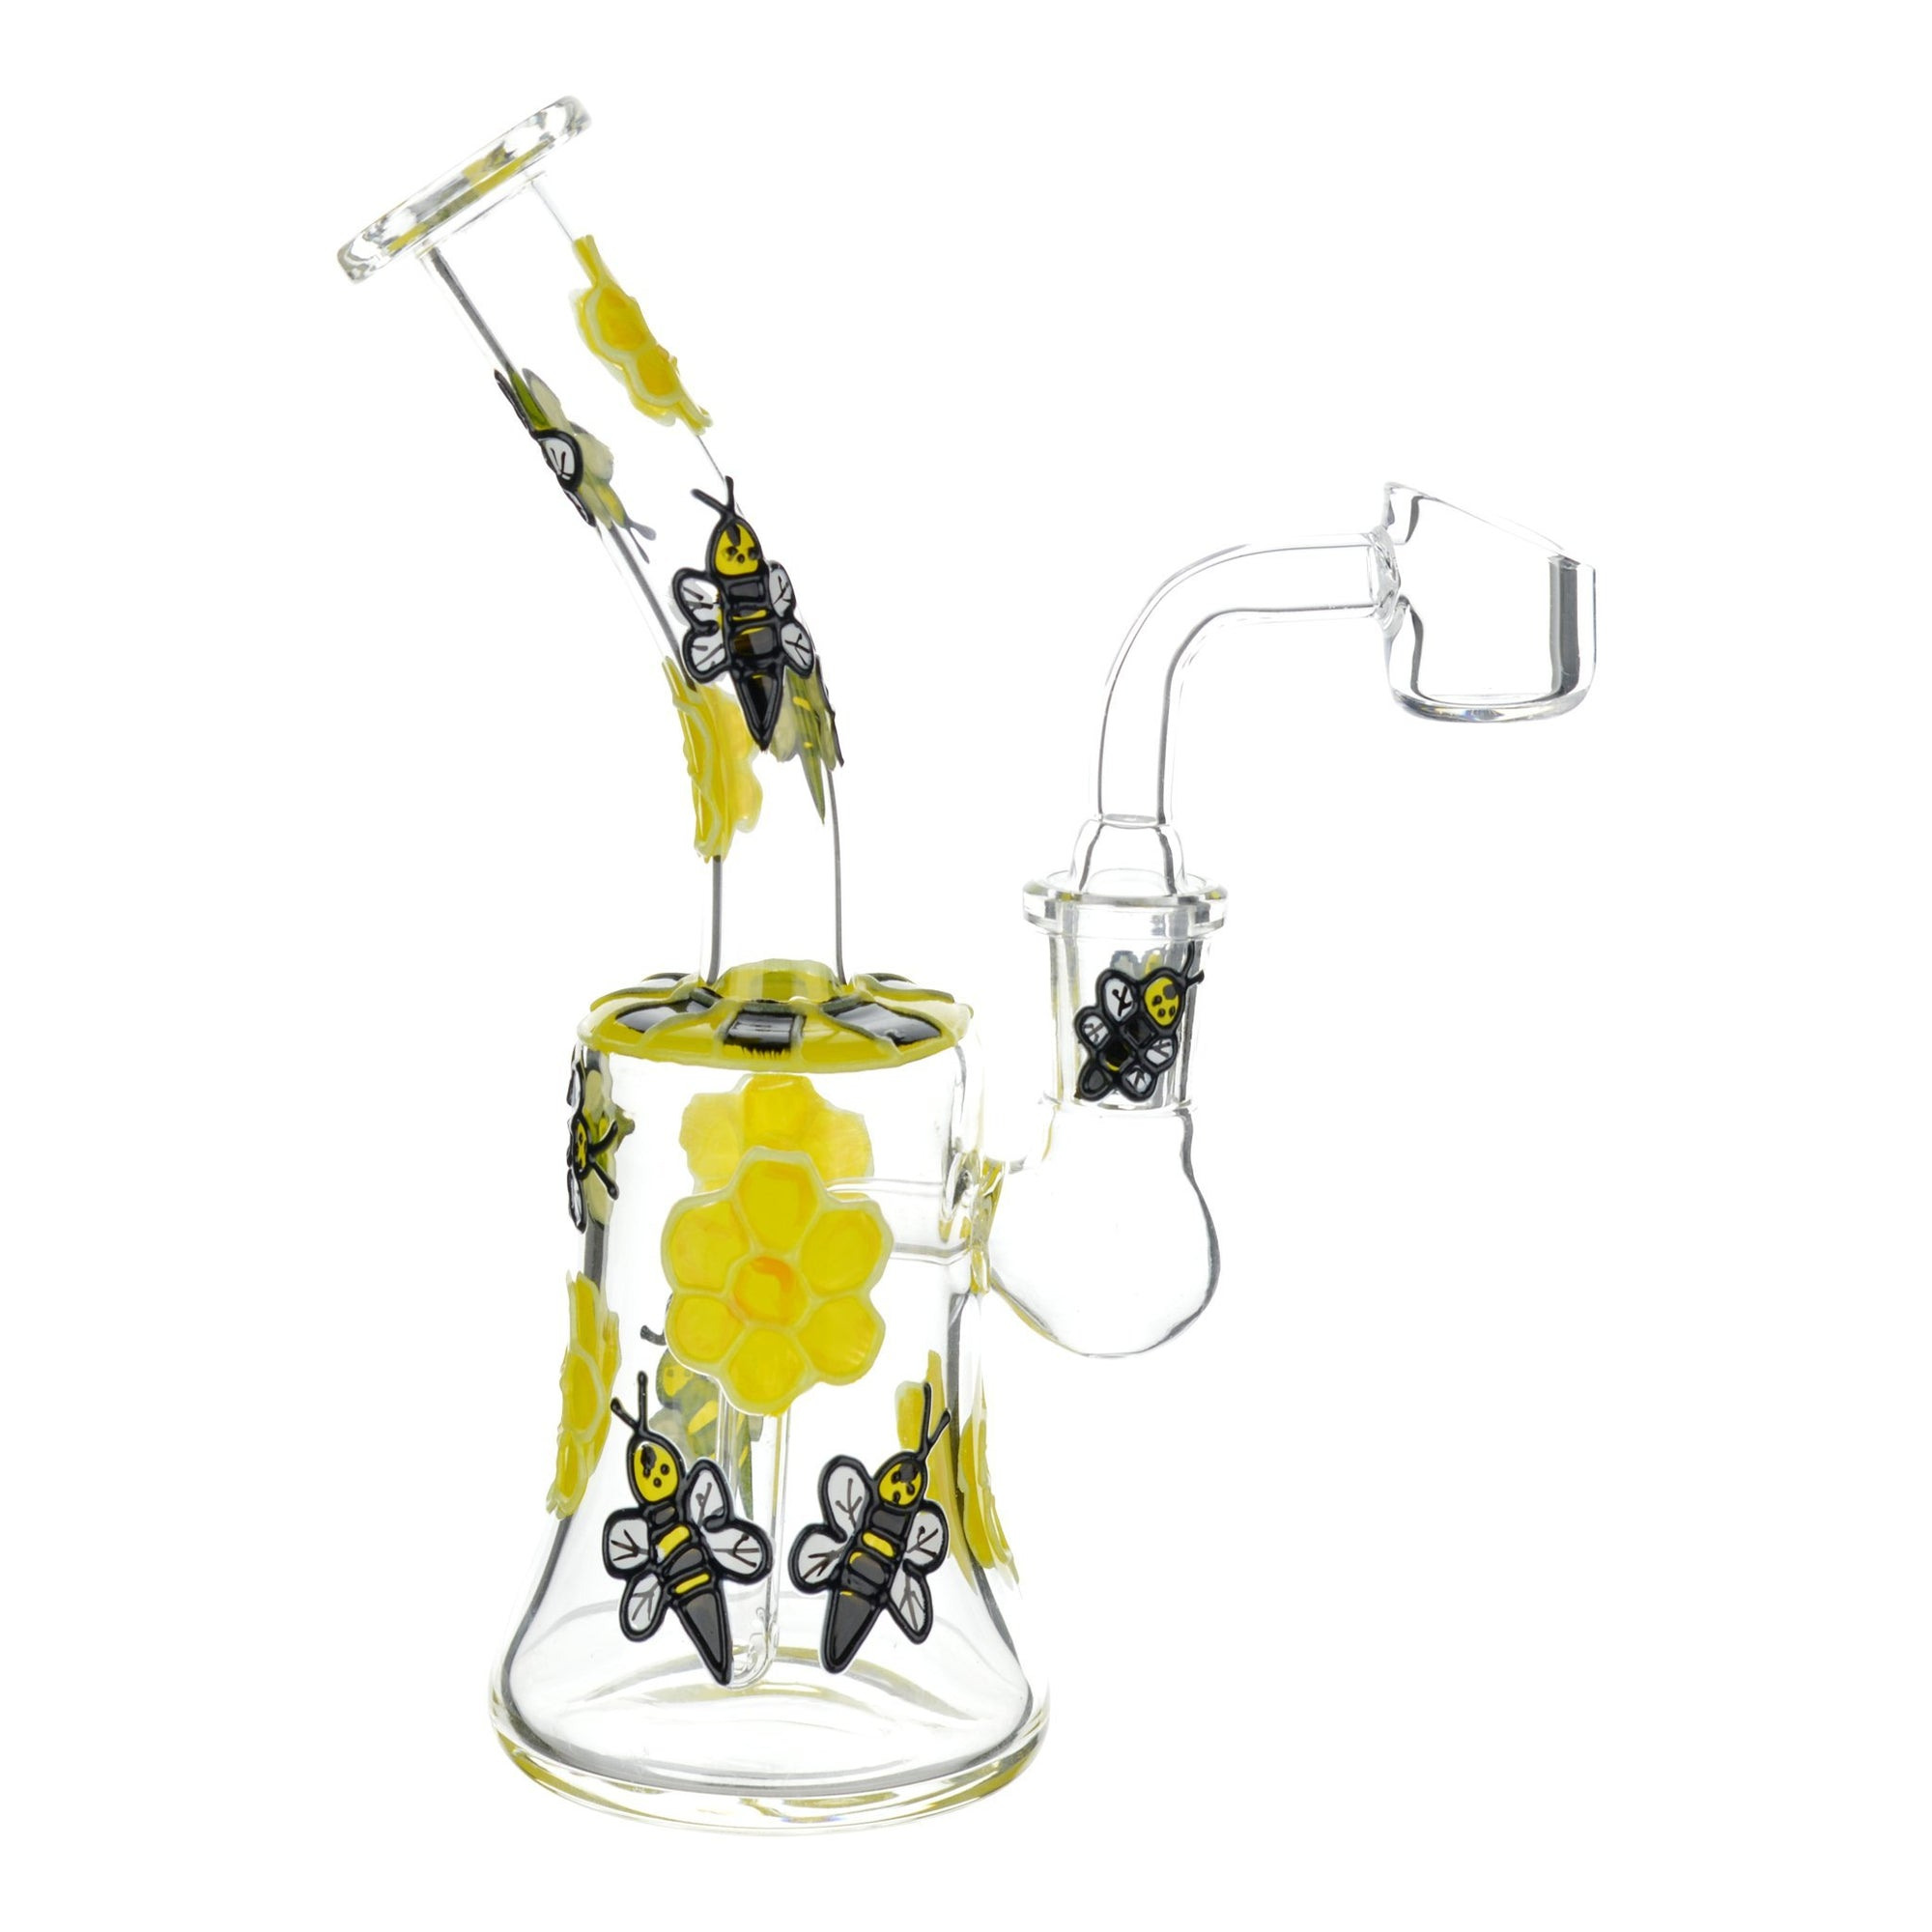 Full shot glass dab rig smoking device yellow flowers honeybee mouthpiece facing left banger facing right